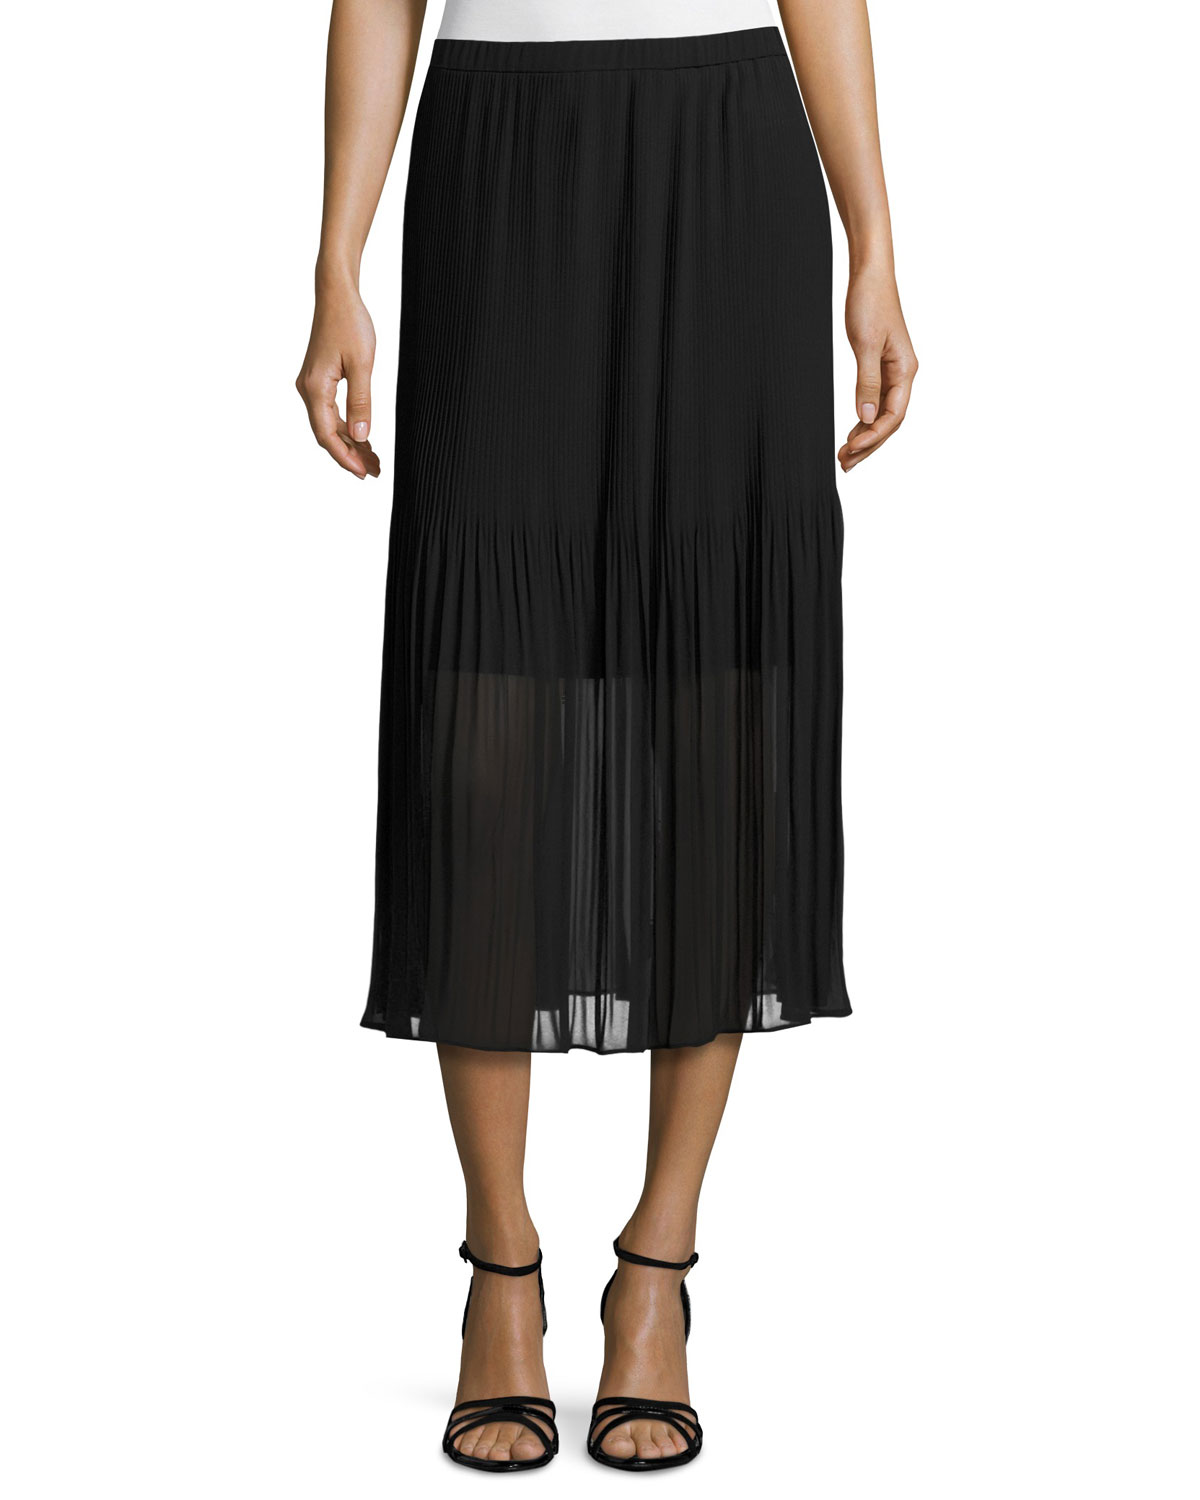 Texas Tech Classic Elegance Ladies Ring: Magaschoni Pleated Chiffon Midi Skirt, Black